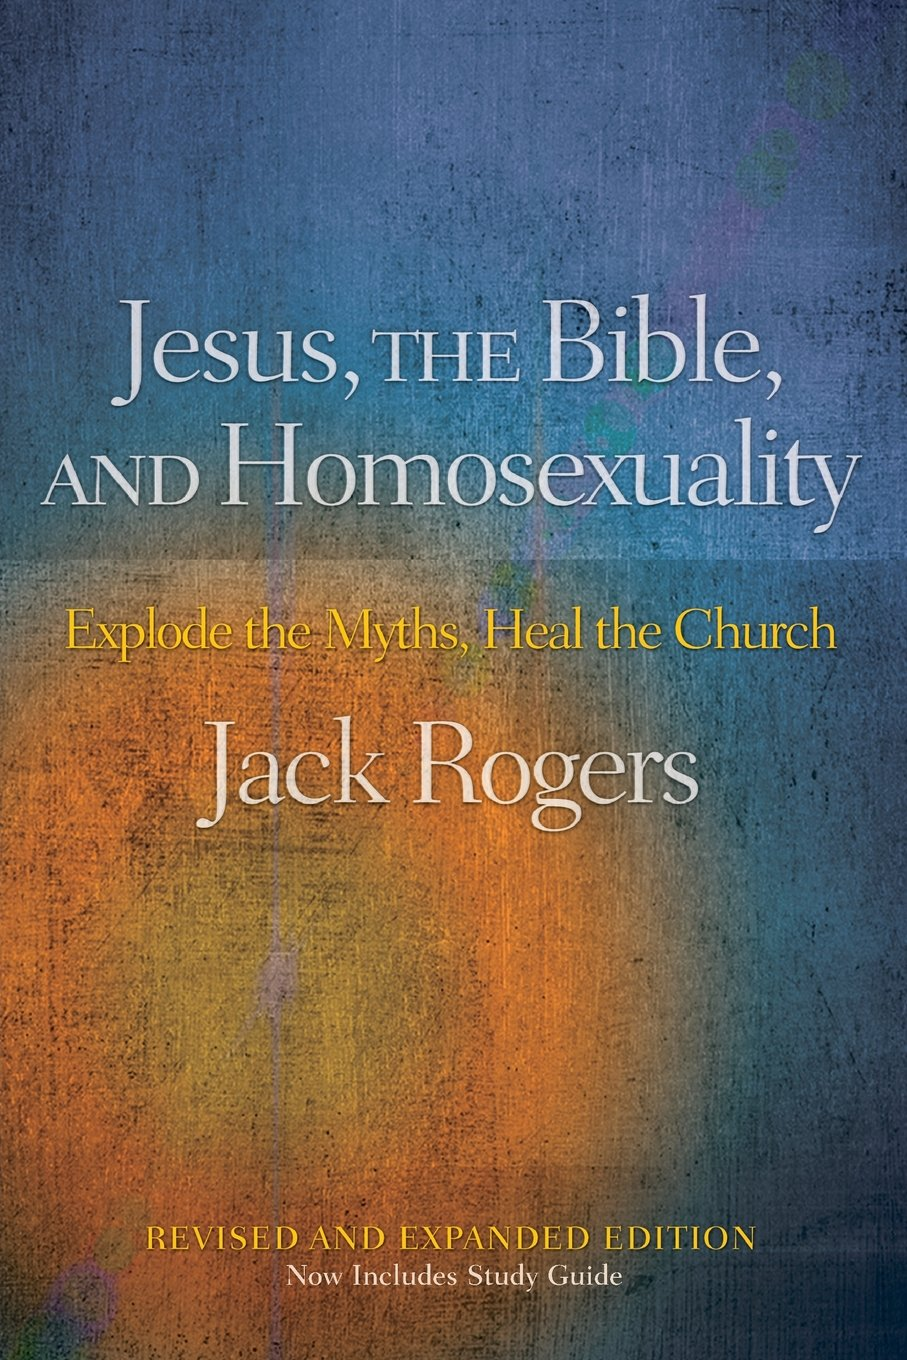 Jesus The Bible And Homosexuality Revised Expanded Edition Explode Myths Heal Church Jack Rogers 9780664233976 Amazon Books